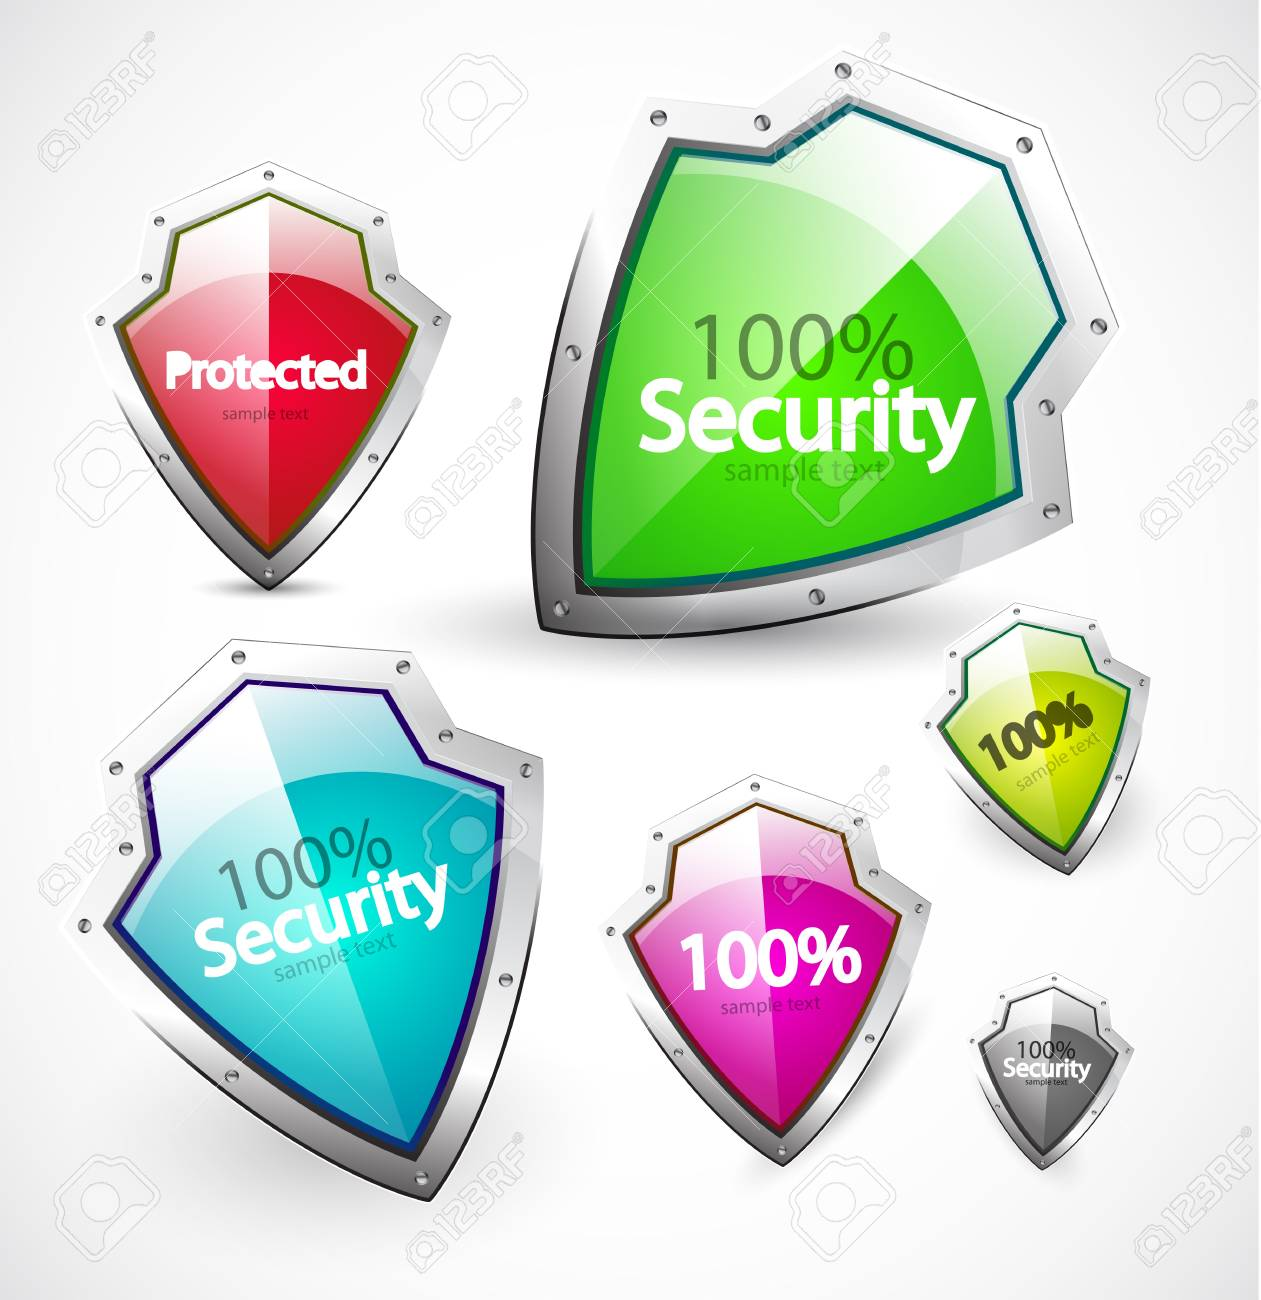 Protected and security icons Stock Photo - 11330061